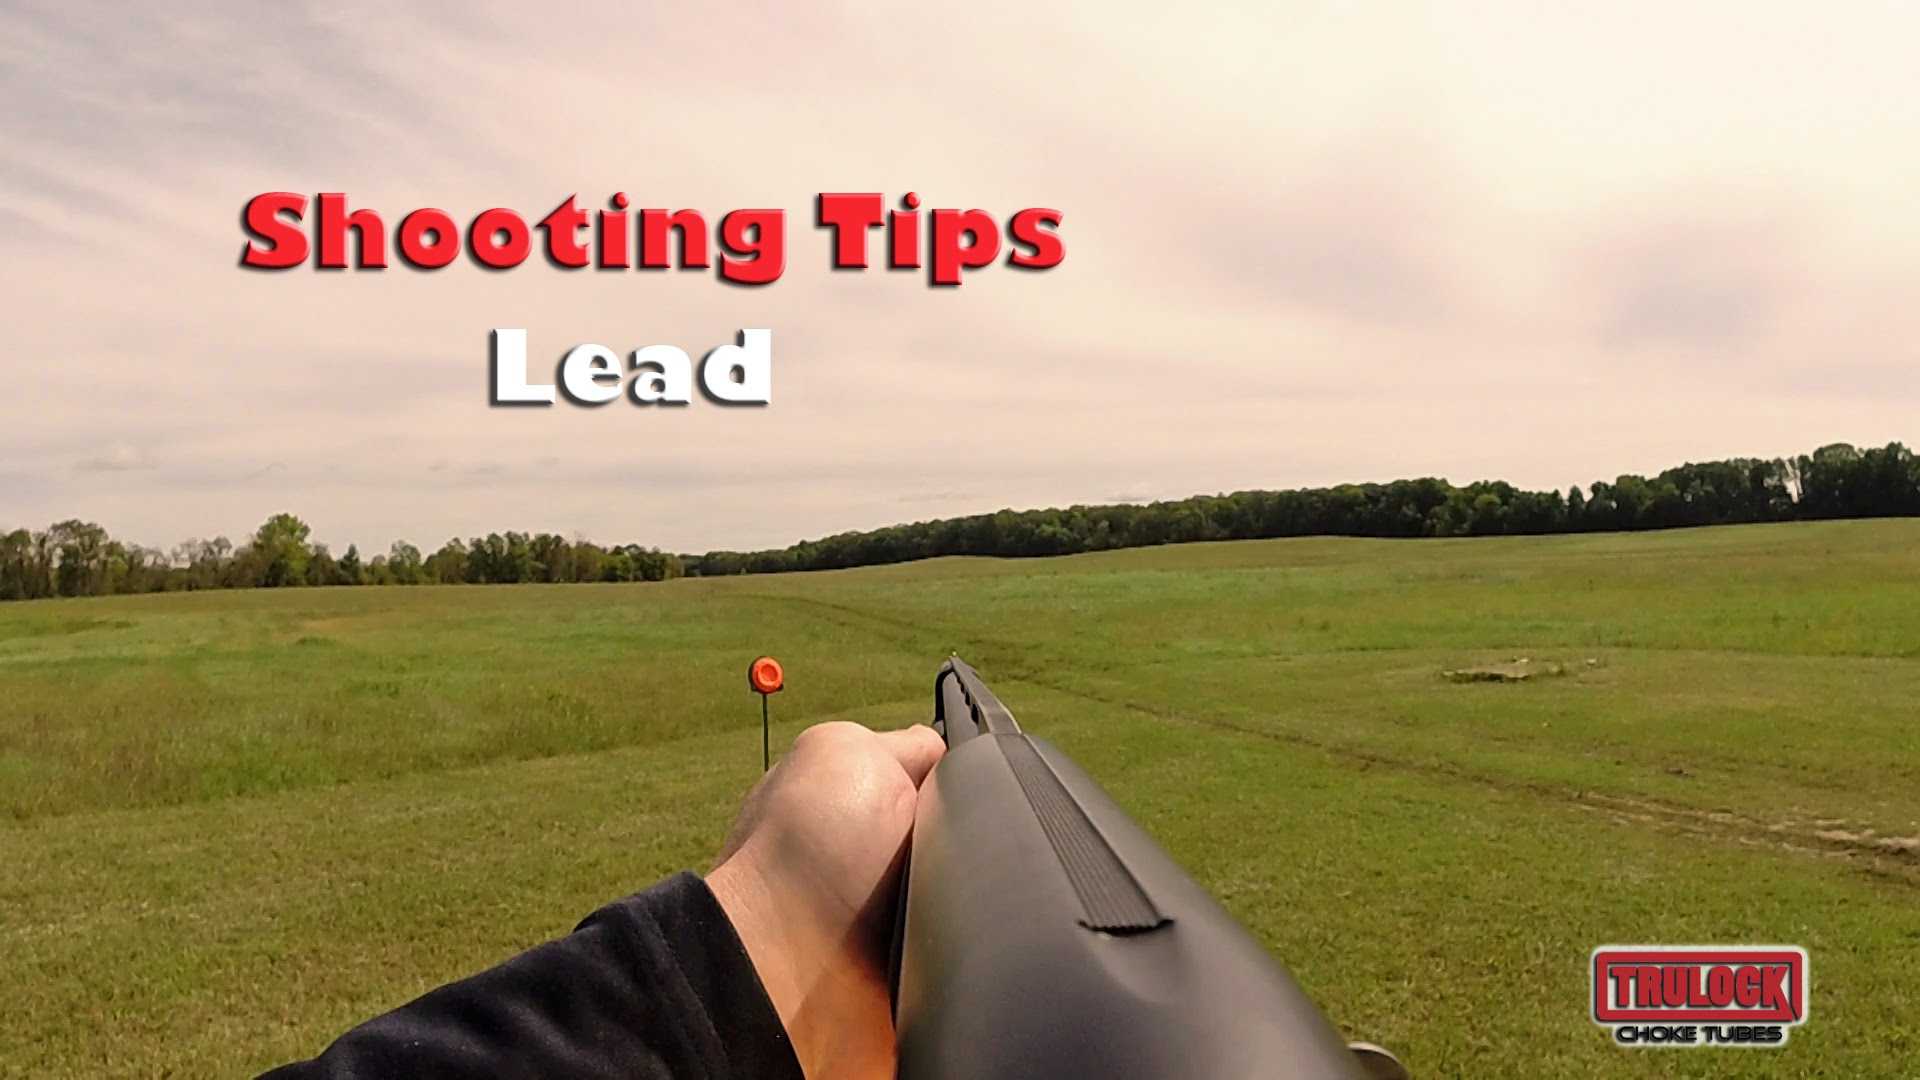 Tips for Better Wing & Clay Shooting - Lead